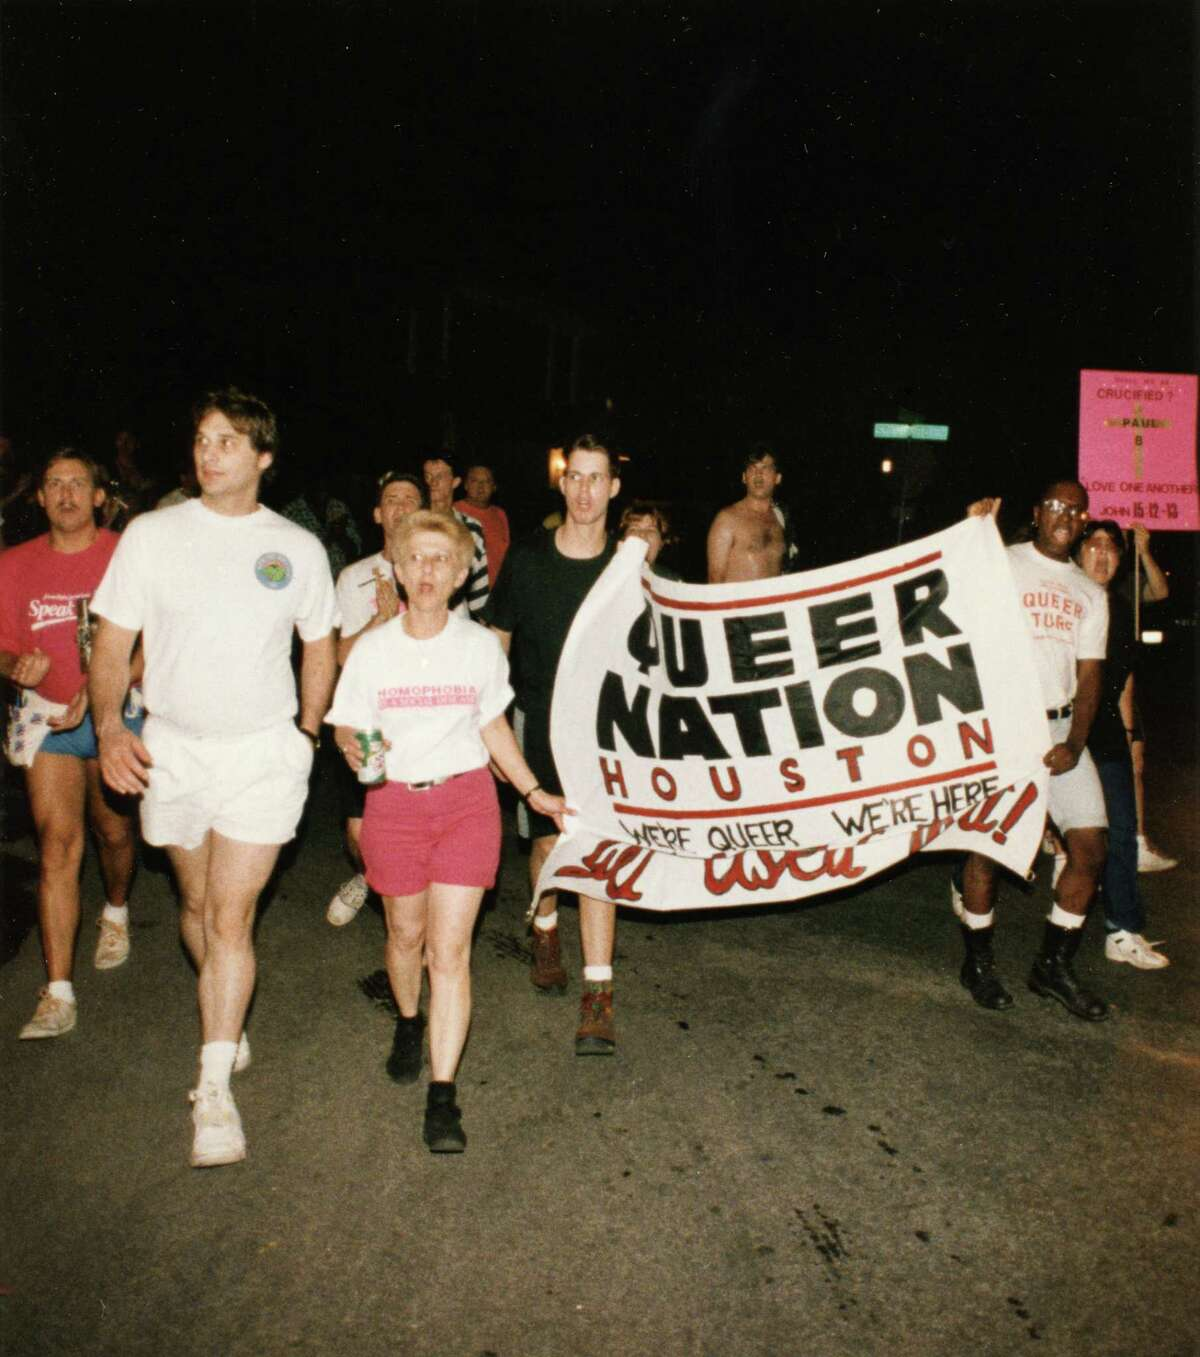 """07/11/1992 - Queer Nation members and supporters march in the Montrose area Saturday night in commemoration of Paul Broussard, who was killed in a gay-bashing hate crime in 1991. Called """"Take Back the Streets II,"""" the march started at 9 pm."""